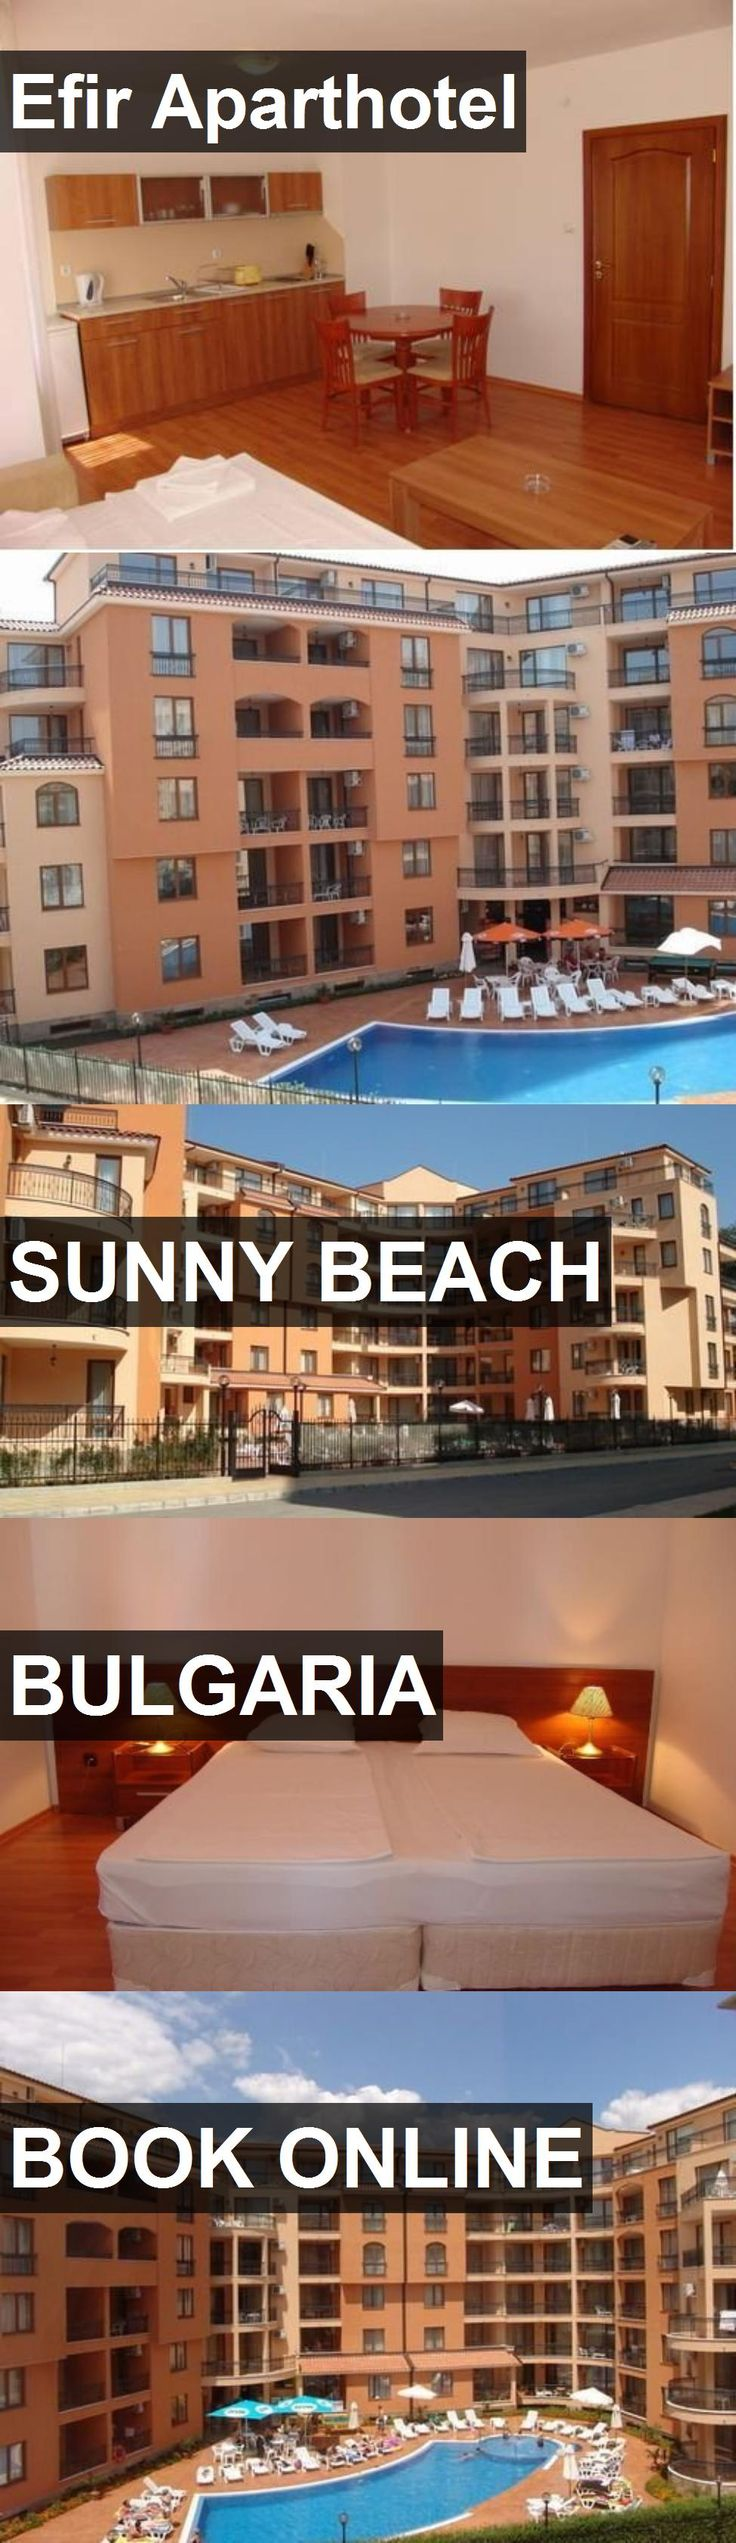 Hotel Efir Aparthotel in Sunny Beach, Bulgaria. For more information, photos, reviews and best prices please follow the link. #Bulgaria #SunnyBeach #EfirAparthotel #hotel #travel #vacation